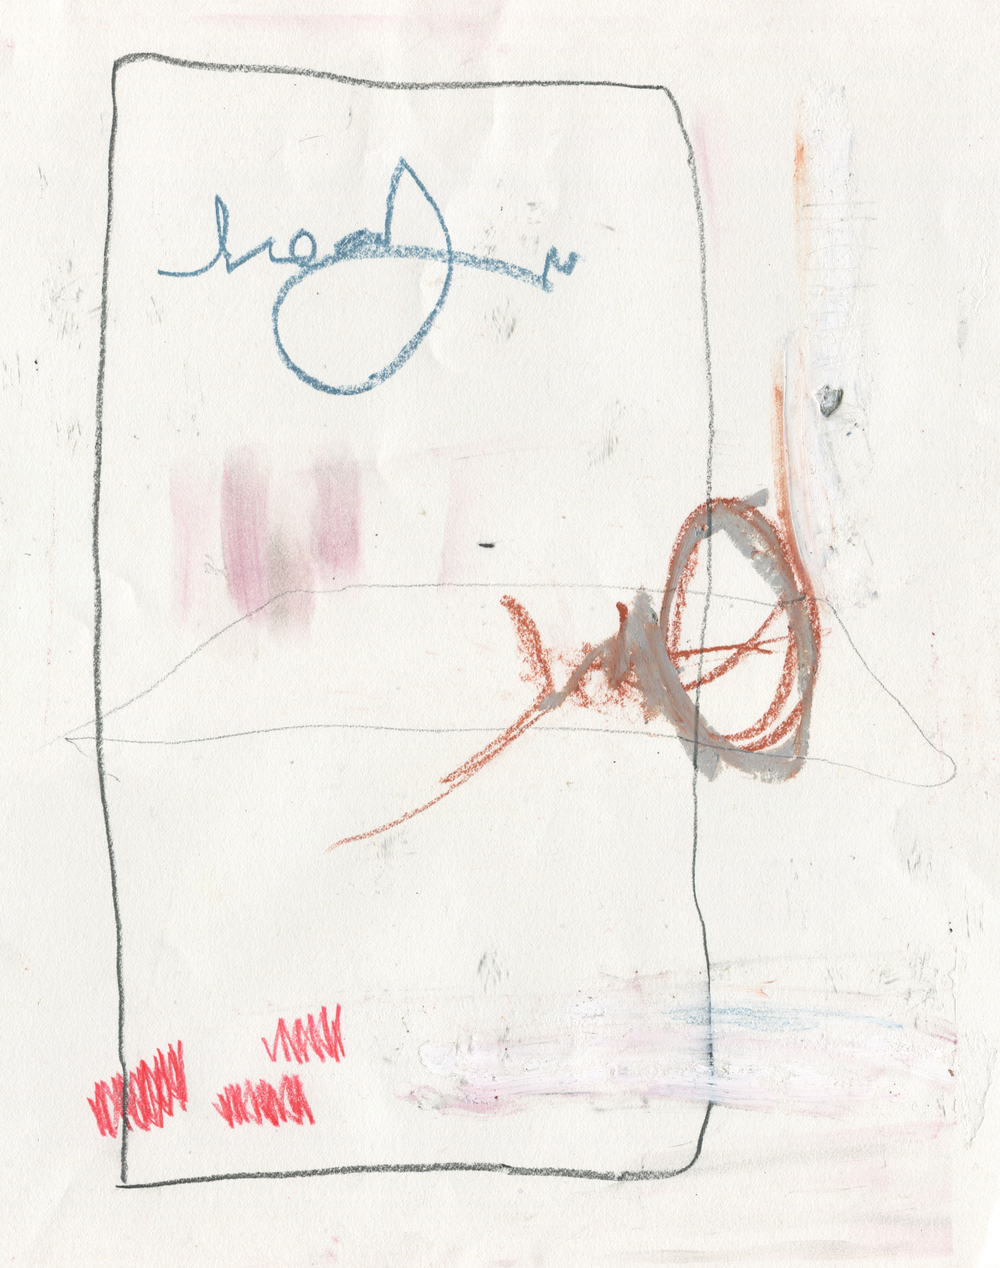 Urban Floor Plans , 2016  Crayon, Conte Crayon, Colored Pencil, Oil Stick, Graphite, and Oil Pastel on Paper